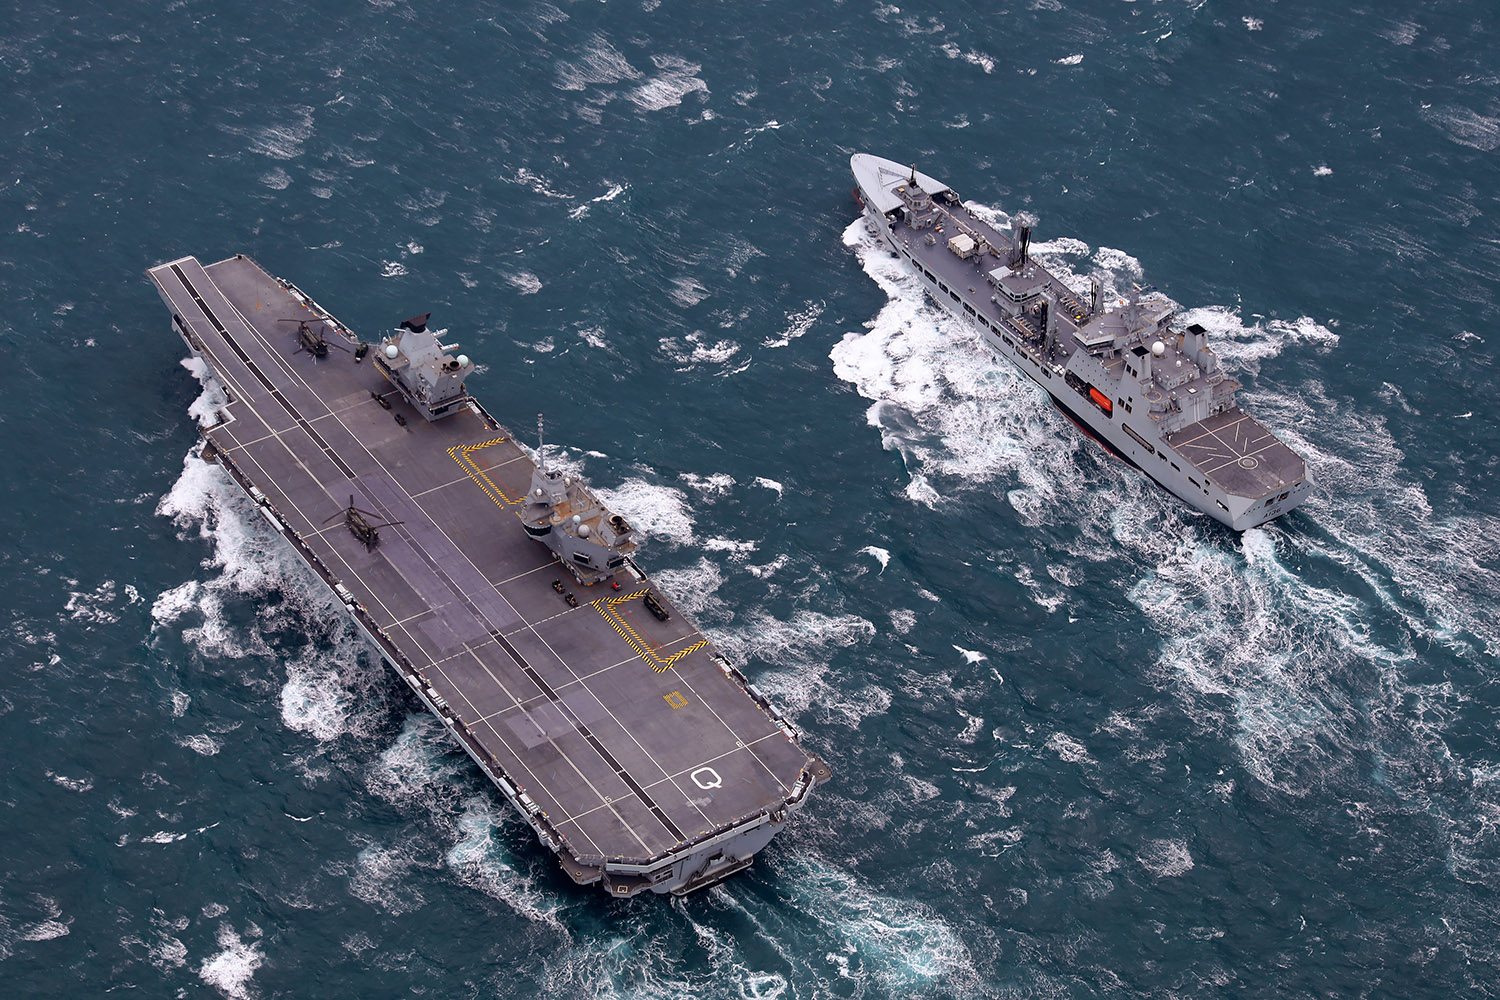 HMS Queen Elizabeth and RFA Tidespring meet up at sea